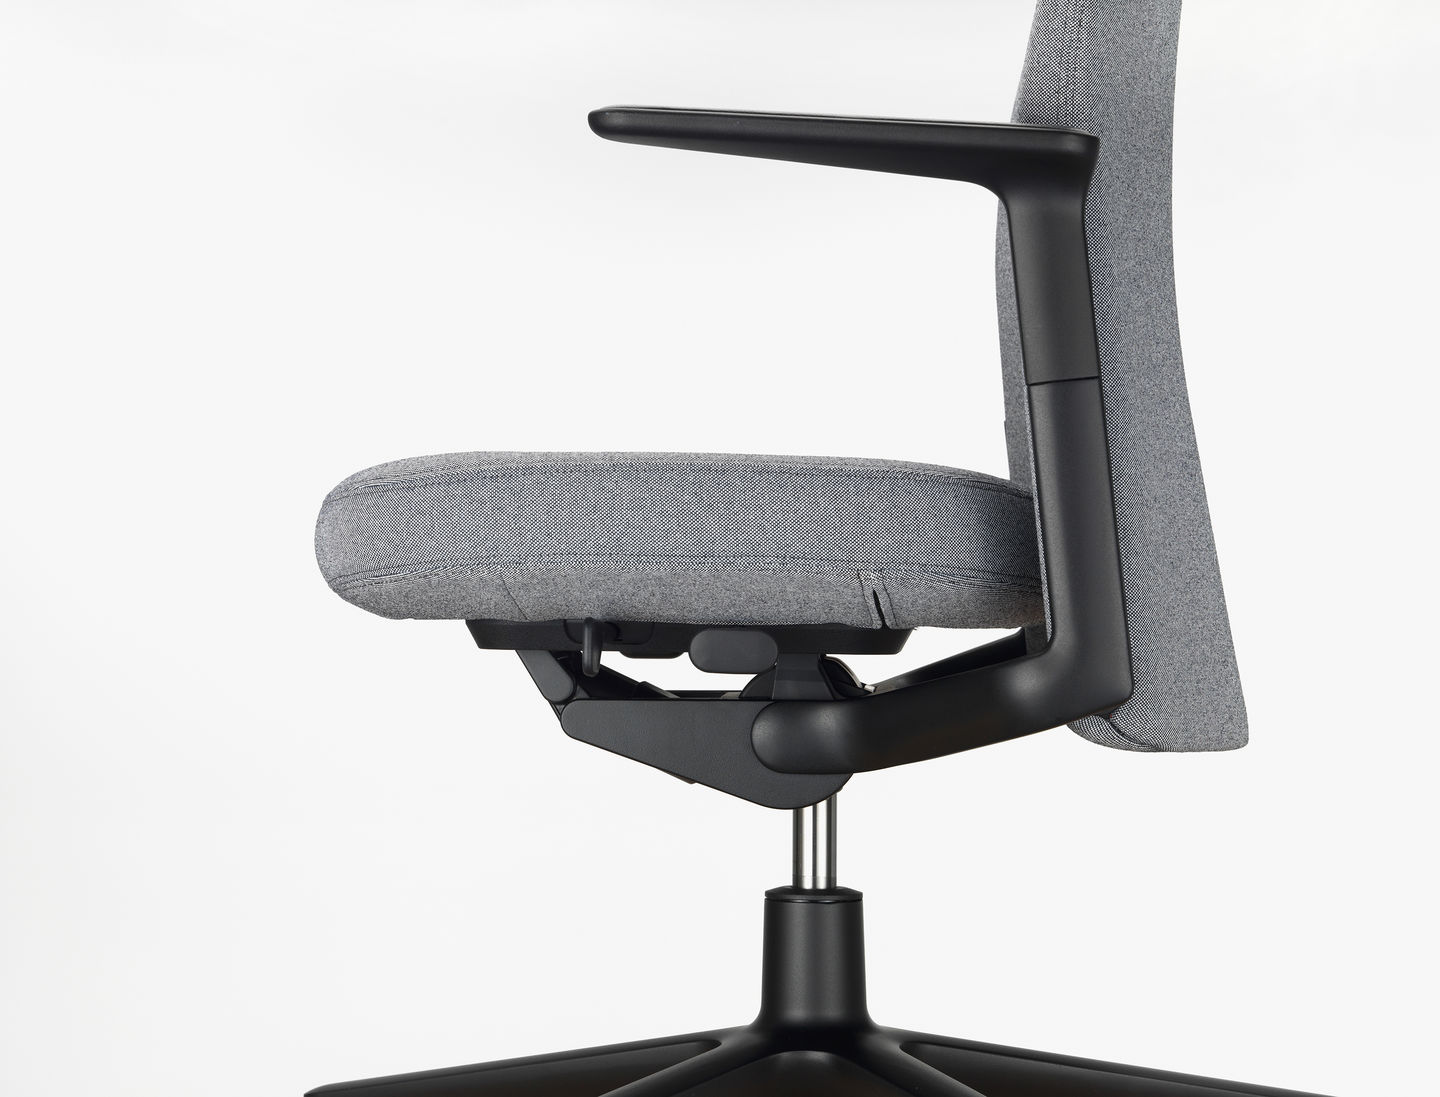 Although Not Readily Visible The Pacific Chair Offers All Sophisticated Functions Necessary For Ergonomic Seating Height Adjule Back And